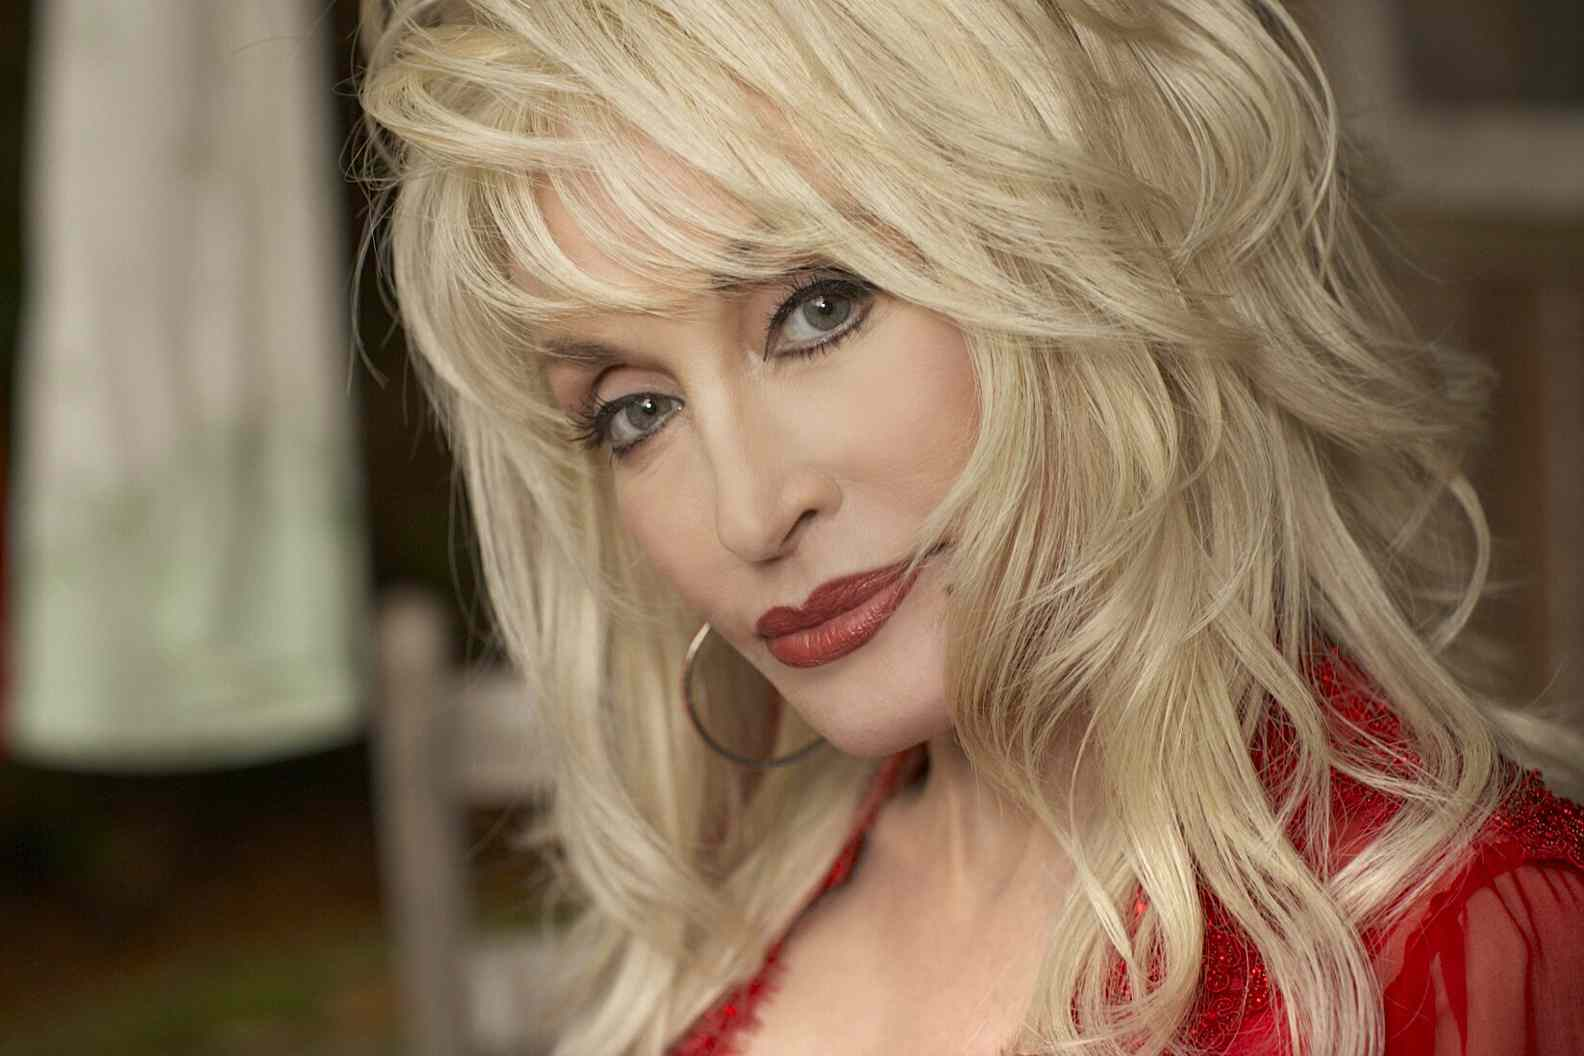 Dolly Parton Wallpaper - Wide Wallpapers